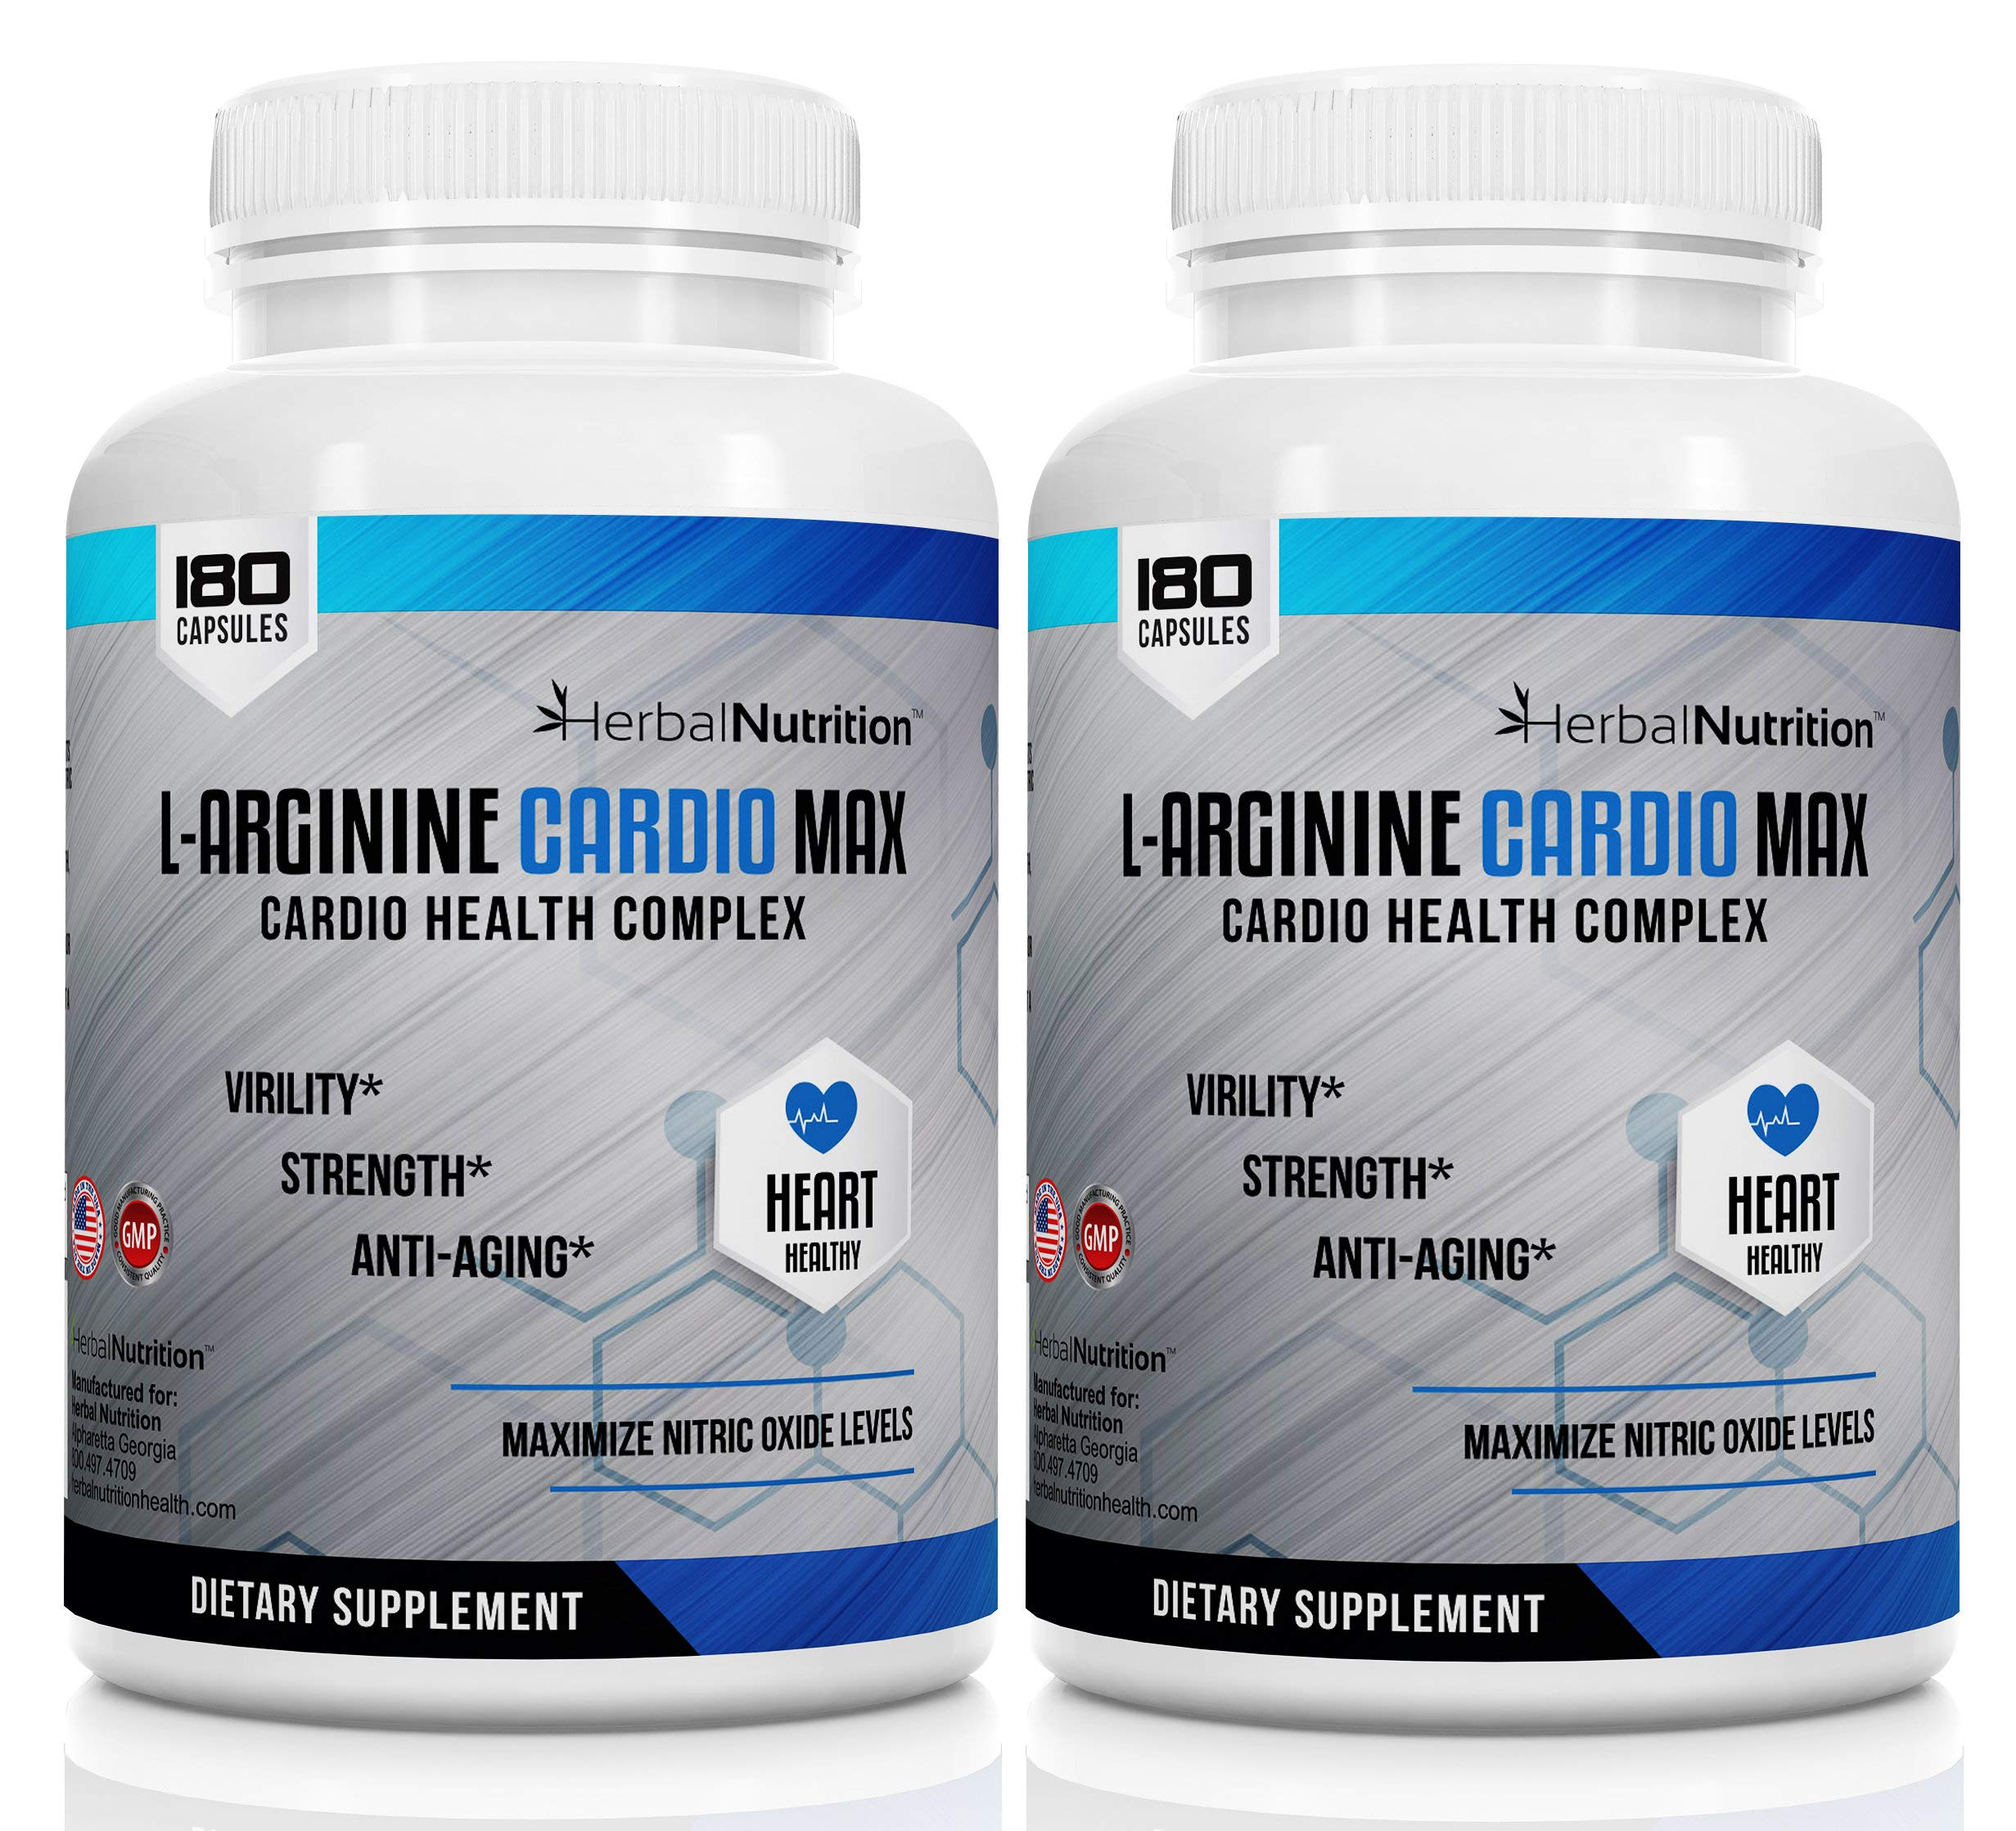 L-Arginine Cardio Max | 1500mg Cardio Support Blend | Two Bottles 360 Caps | LUS L-Citrulline, Vitamins, Minerals Support Cardio Health, Blood Pressure, Cholesterol, Energy, Nitric Oxide | Ships Free